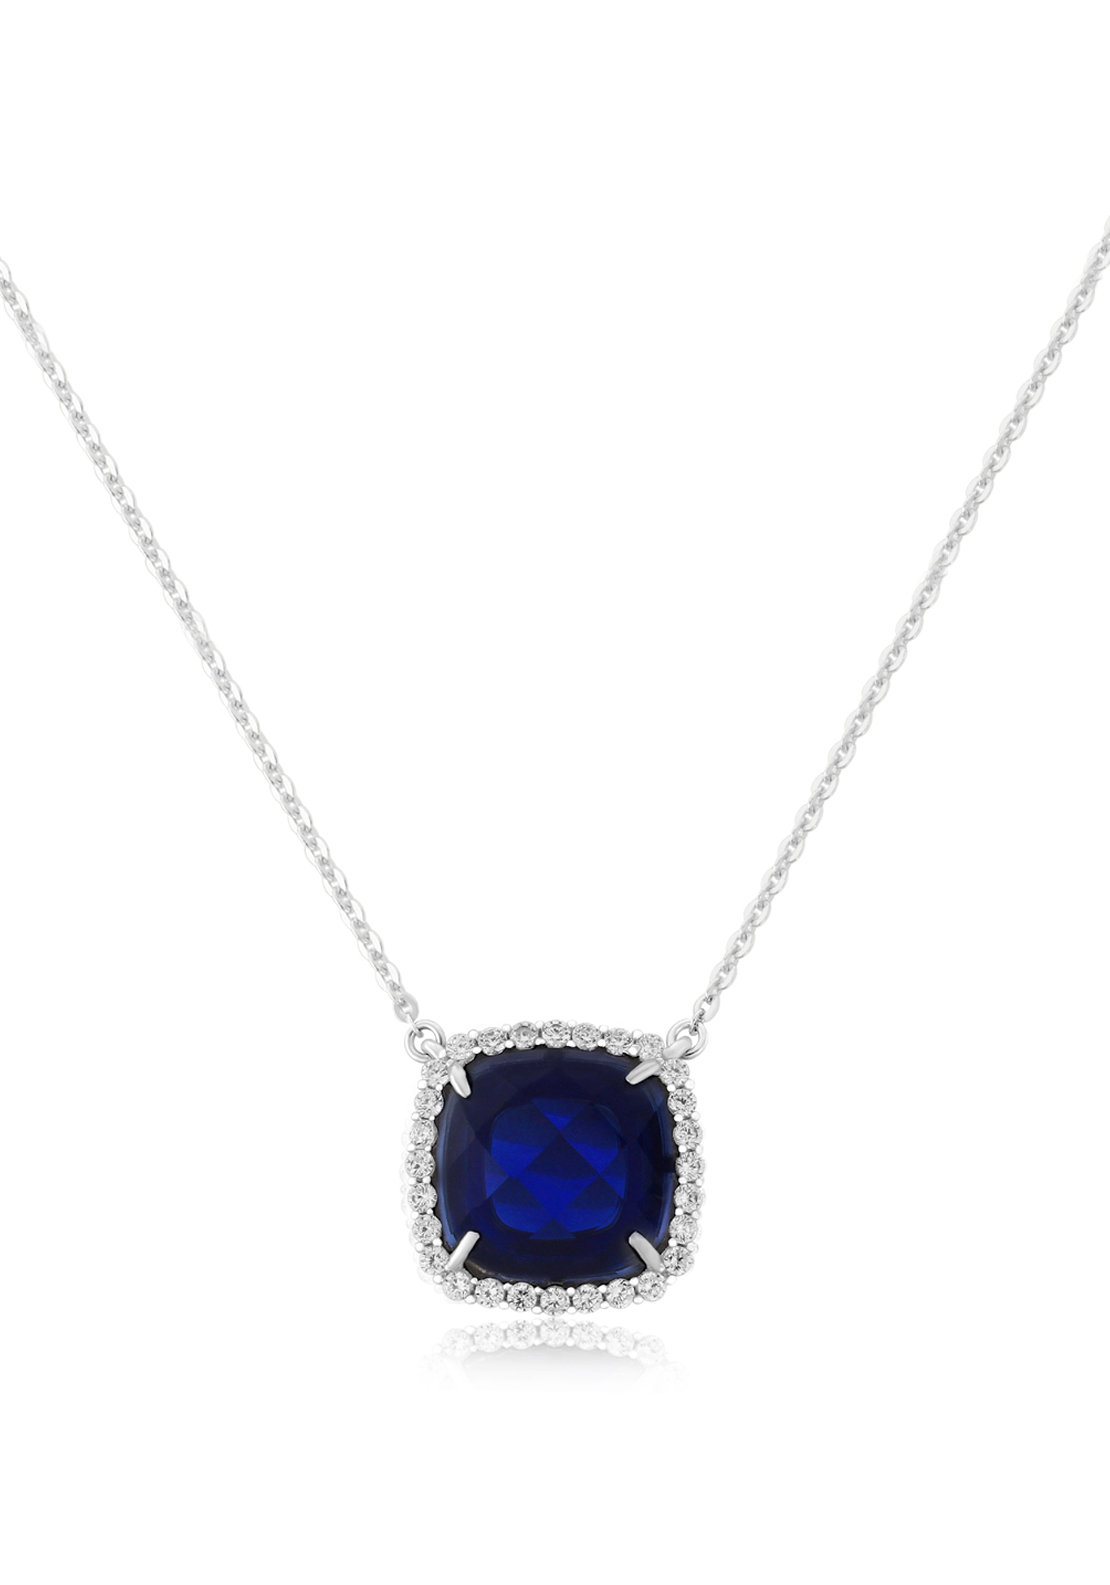 Waterford Crystal Square Faux Sapphire and Pave Pendant Necklace, Silver